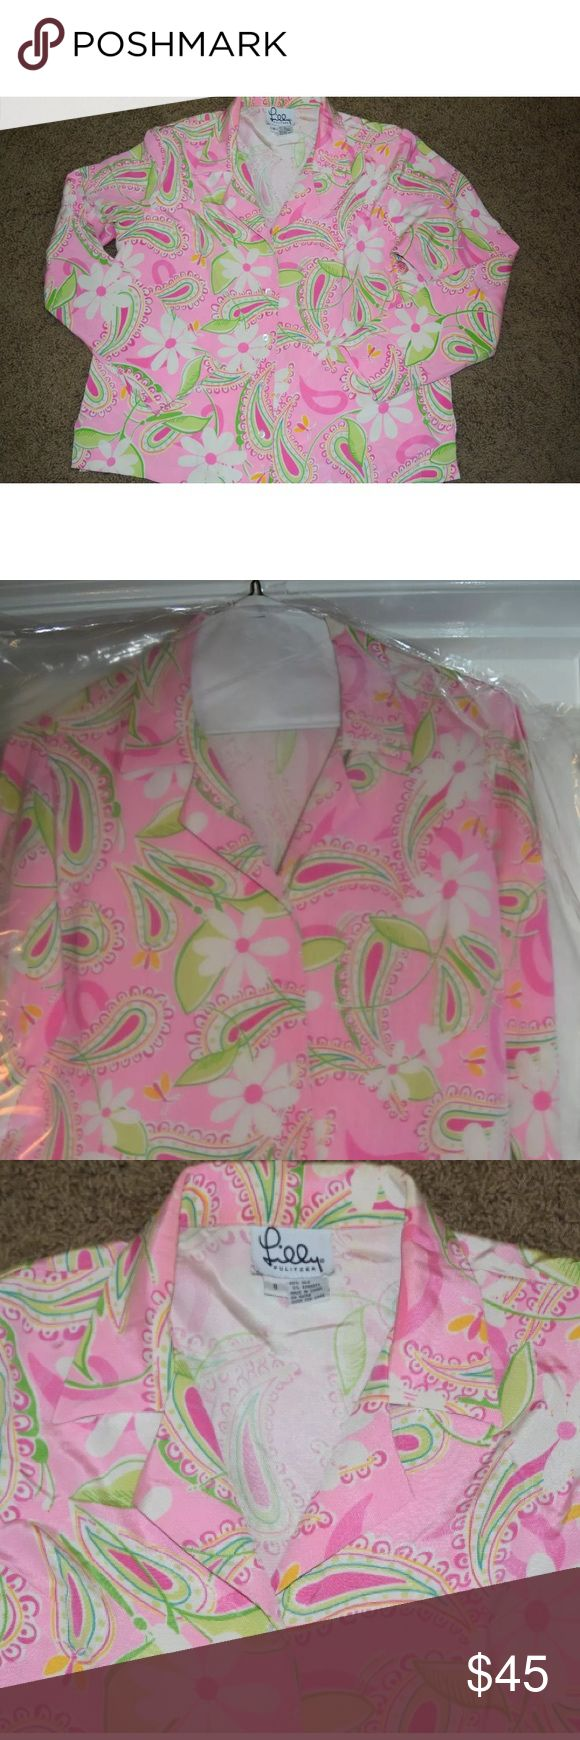 """Women's 8 Lilly Pulitzer Pink Floral Blouse Shirt Women's size 8 Pink Floral Button Down Blouse ~ 95% silk 5% spandex ~ shoulder to shoulder 17"""" ~ front shoulder to hem 23"""" ~ armpit to armpit 20.5"""" ~ sleeve inseam 18"""" ~ side vents 3"""" ~ White Lilly Pulitzer interior label ~ Blouse has been freshly dry-cleaned 🌸🛍💖 Lilly Pulitzer Tops Blouses"""